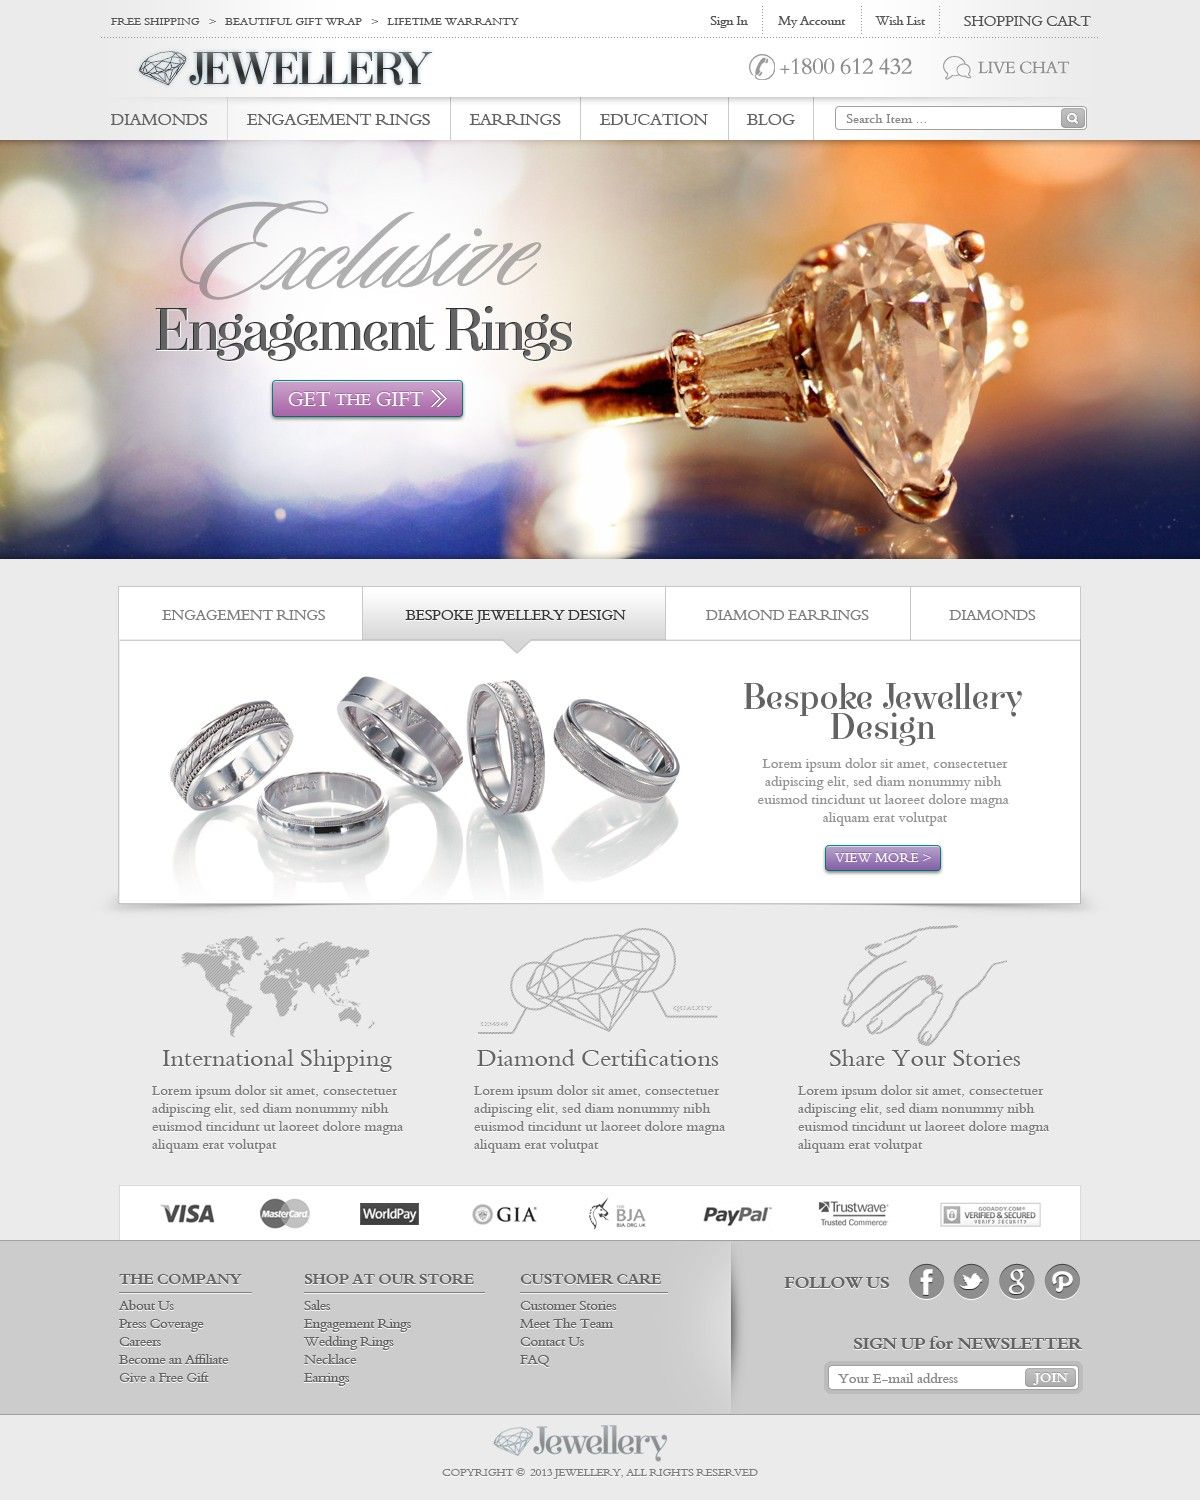 Jewellery Website Design 3 Pages Only Amazing And Trusted E Commerce Site 99designs Jewelry Website Design Website Design Jewelry Website